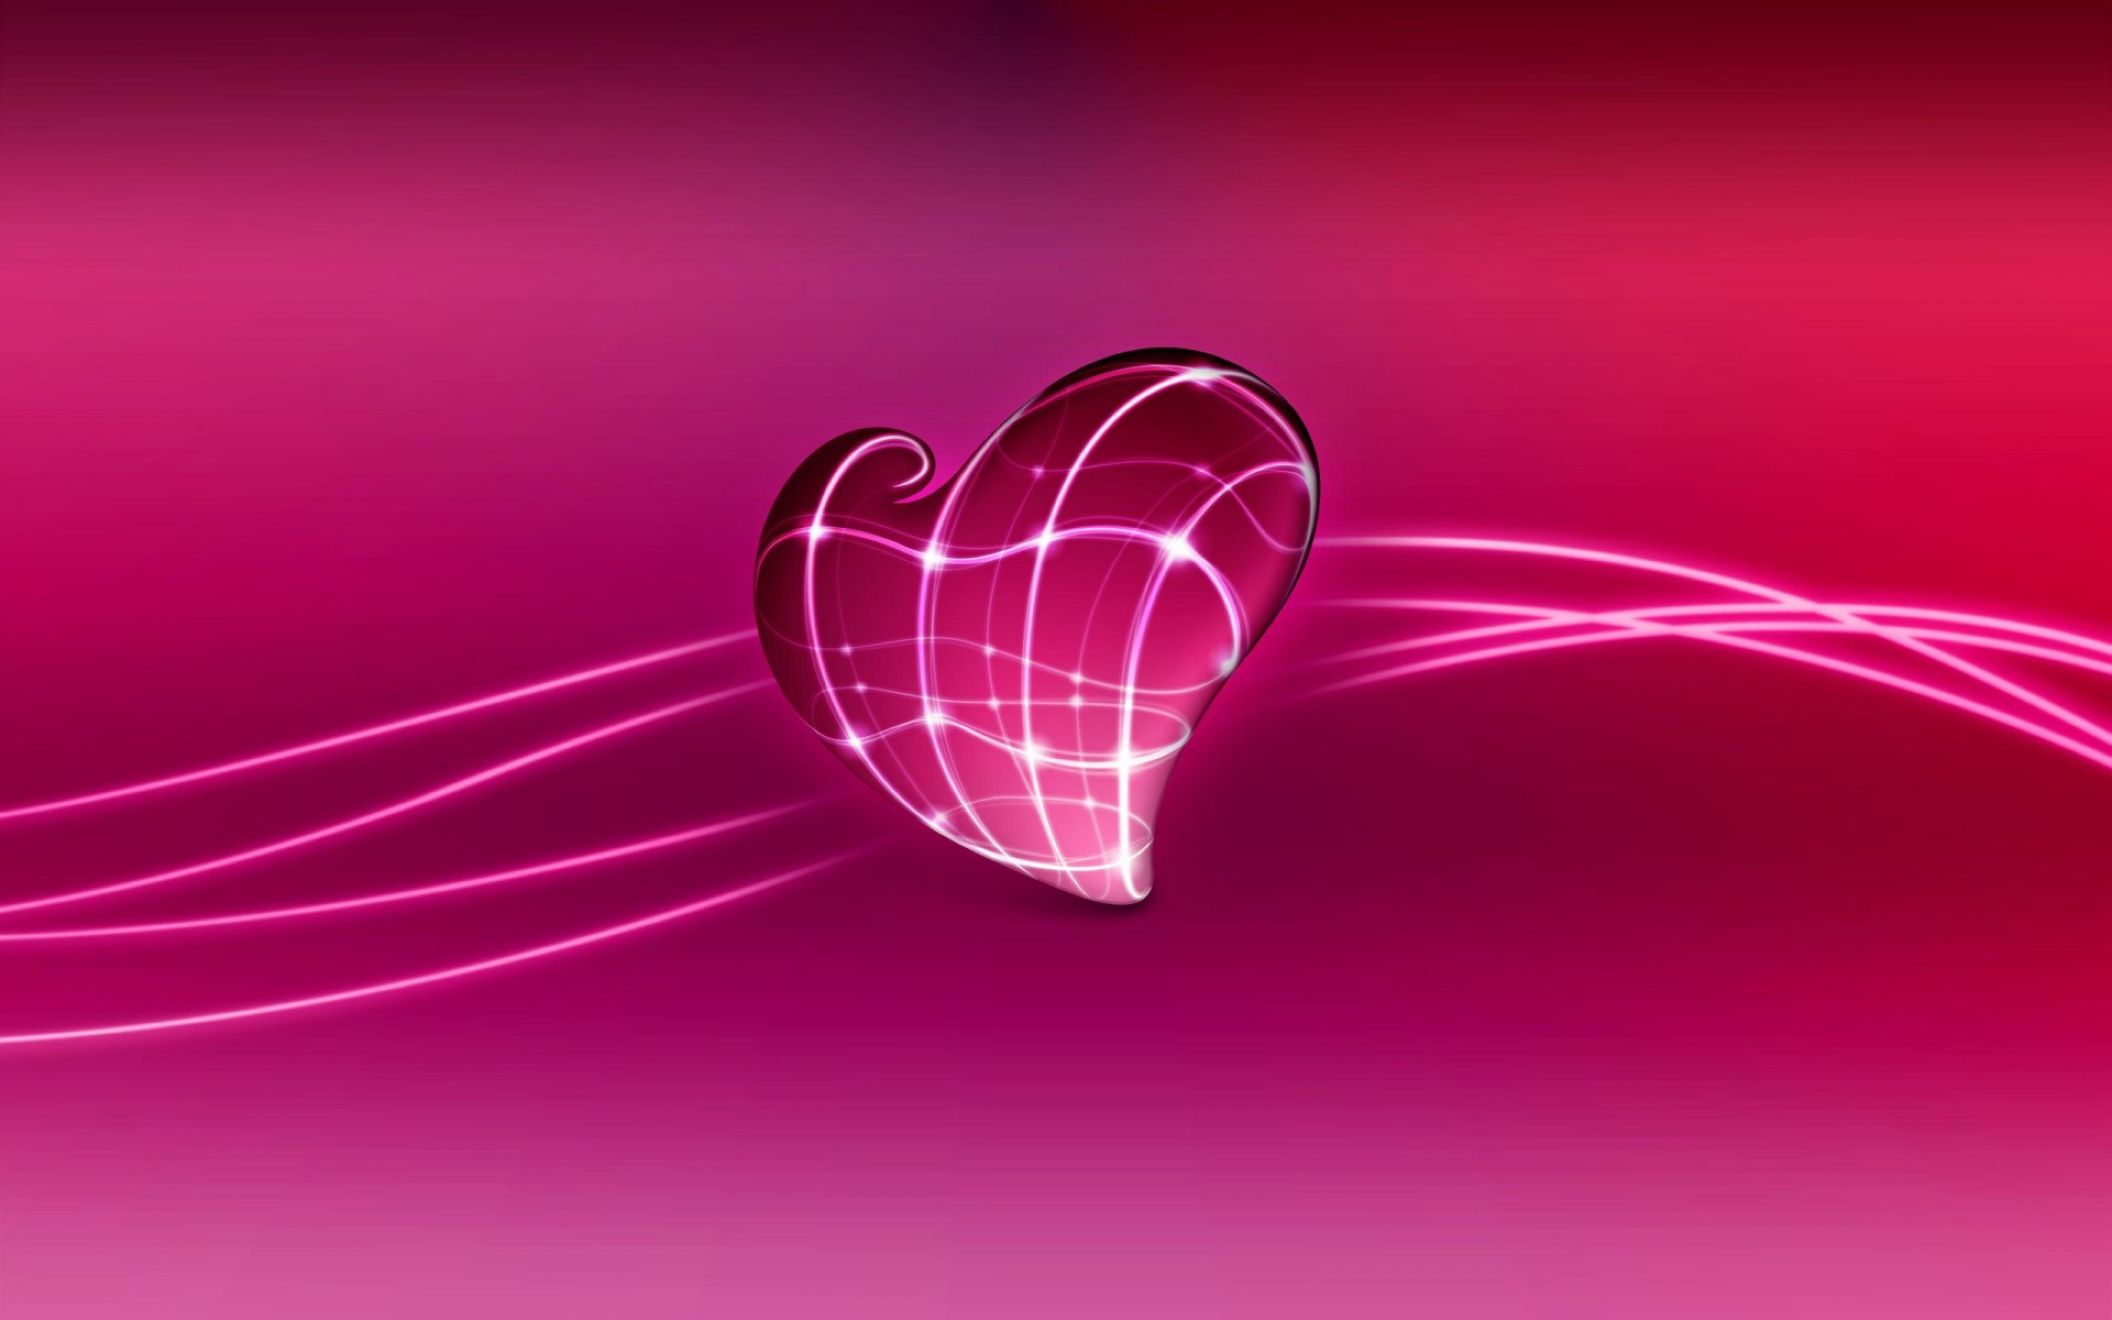 Download free HD Pink 3D Background Love Wallpaper, image